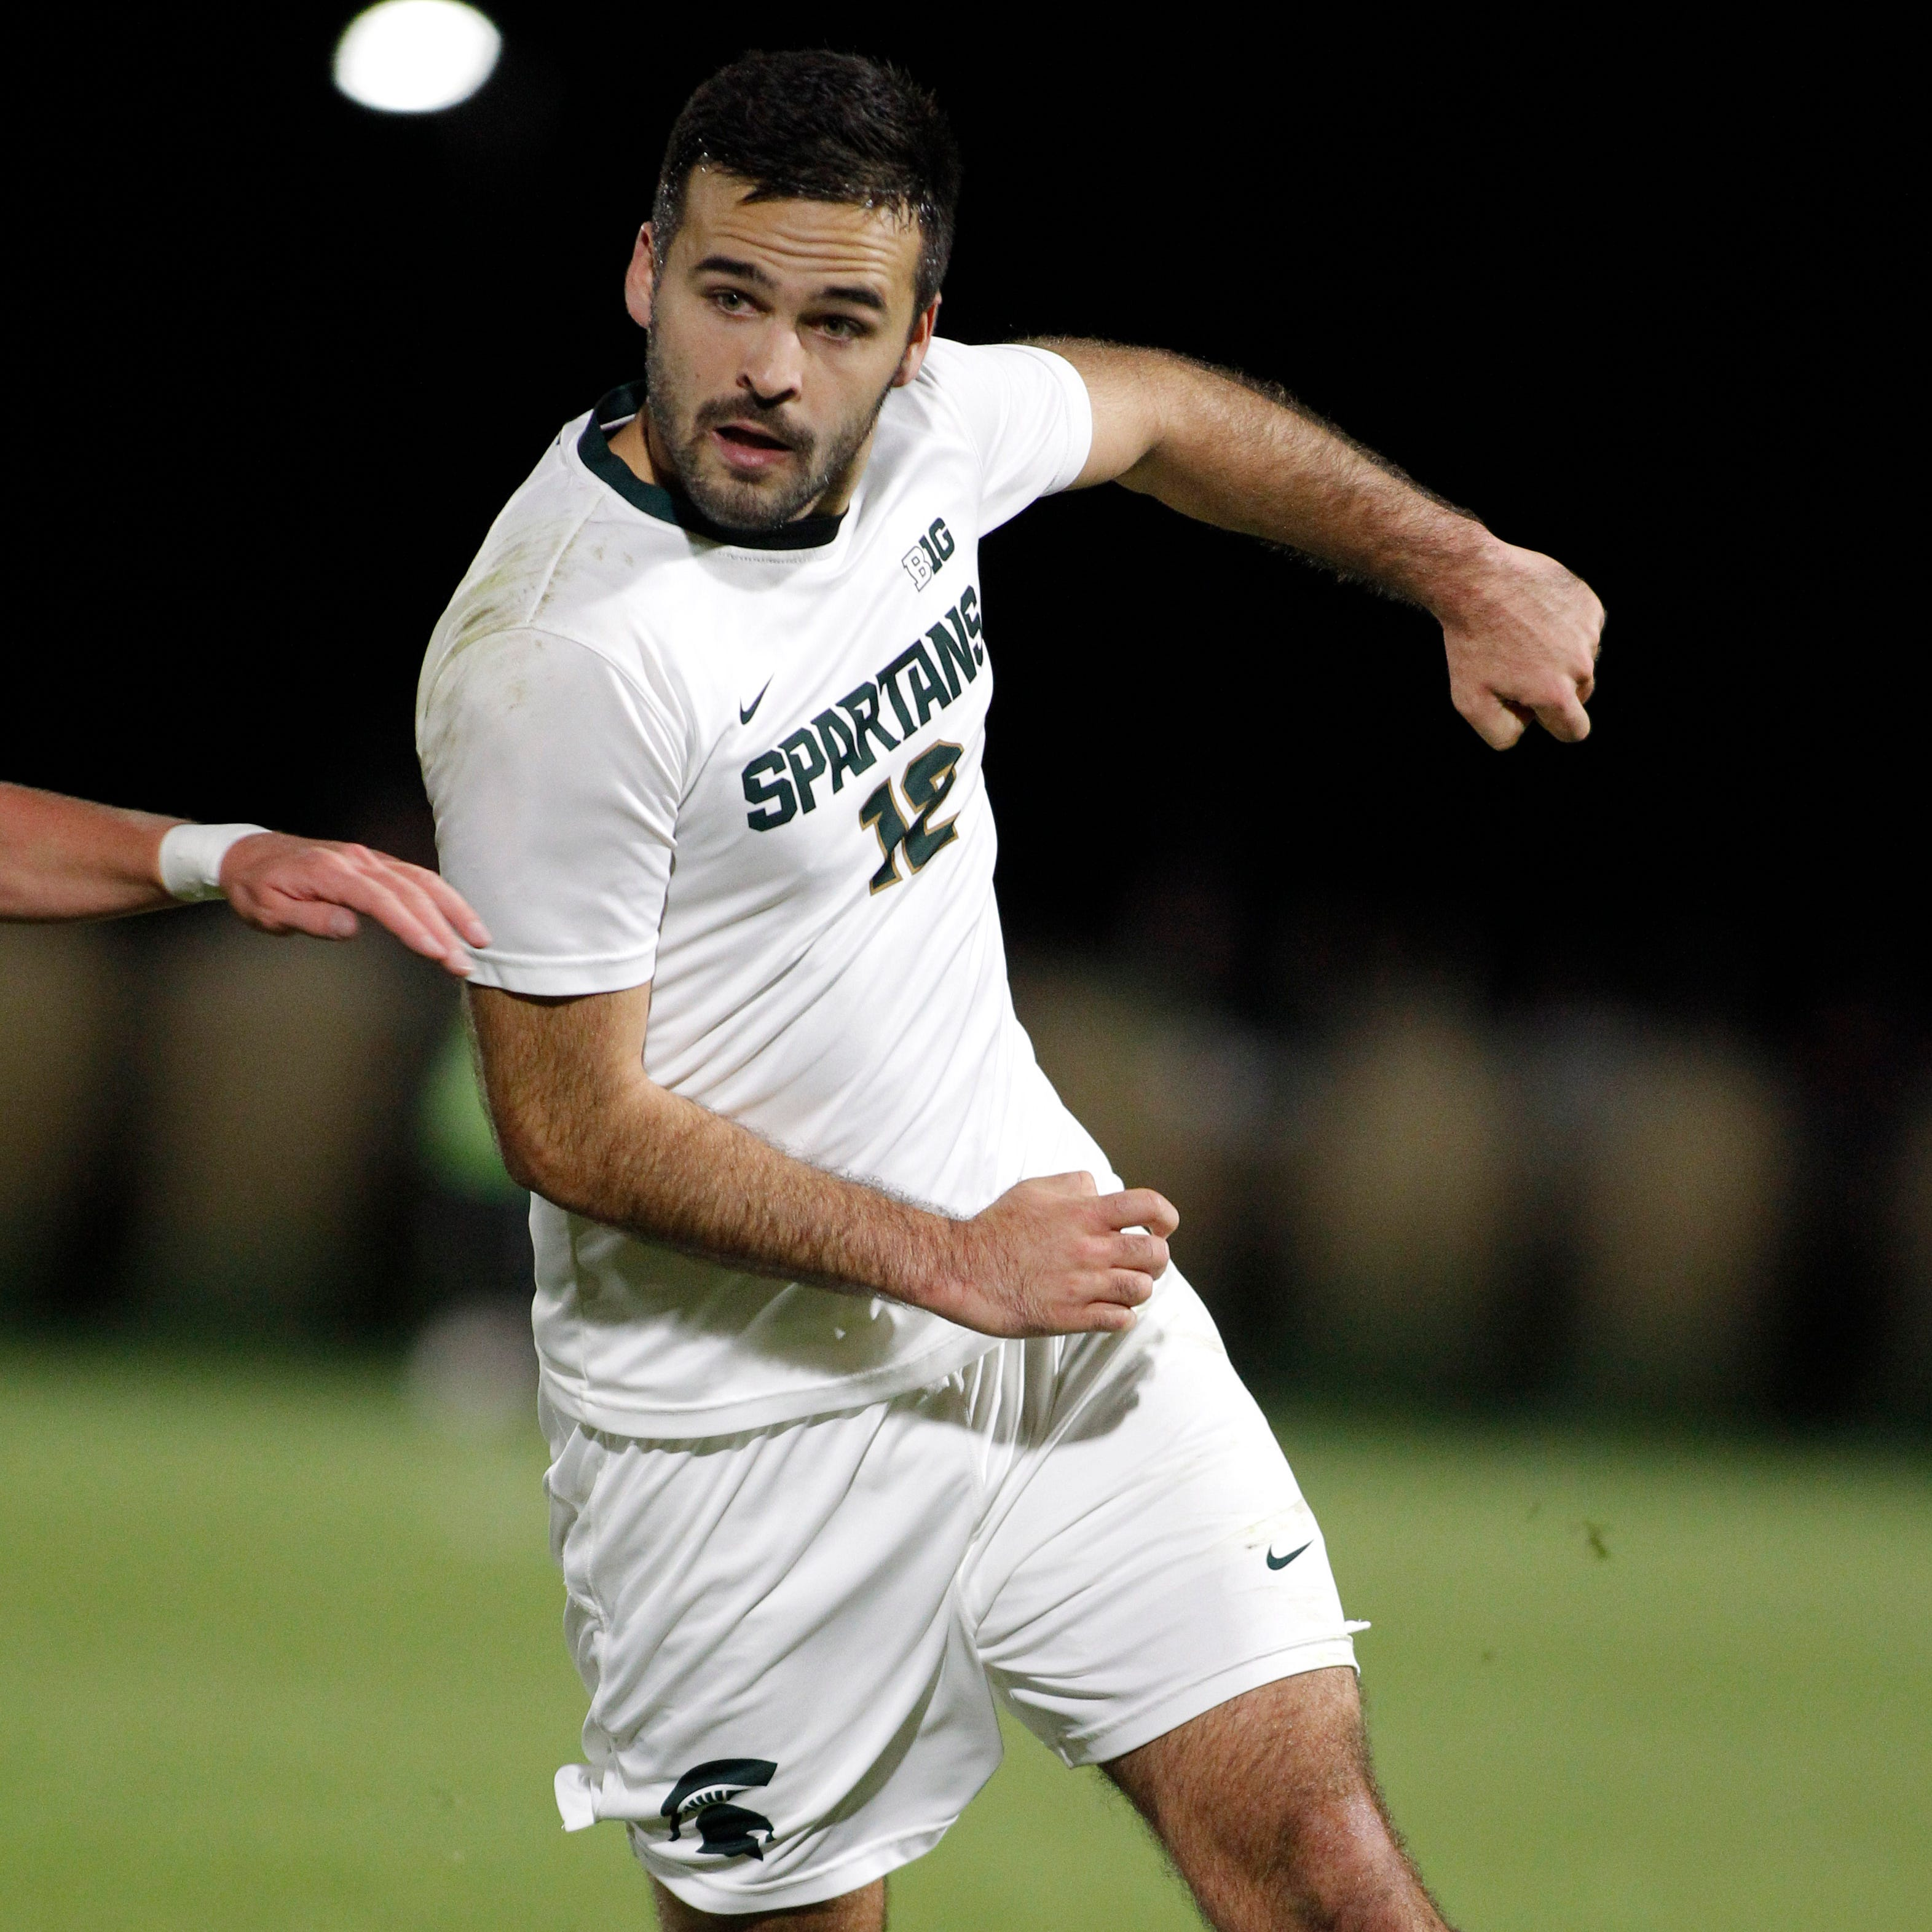 Michigan State advances to Sweet 16 with 2-1 win over No. 4 Louisville in OT